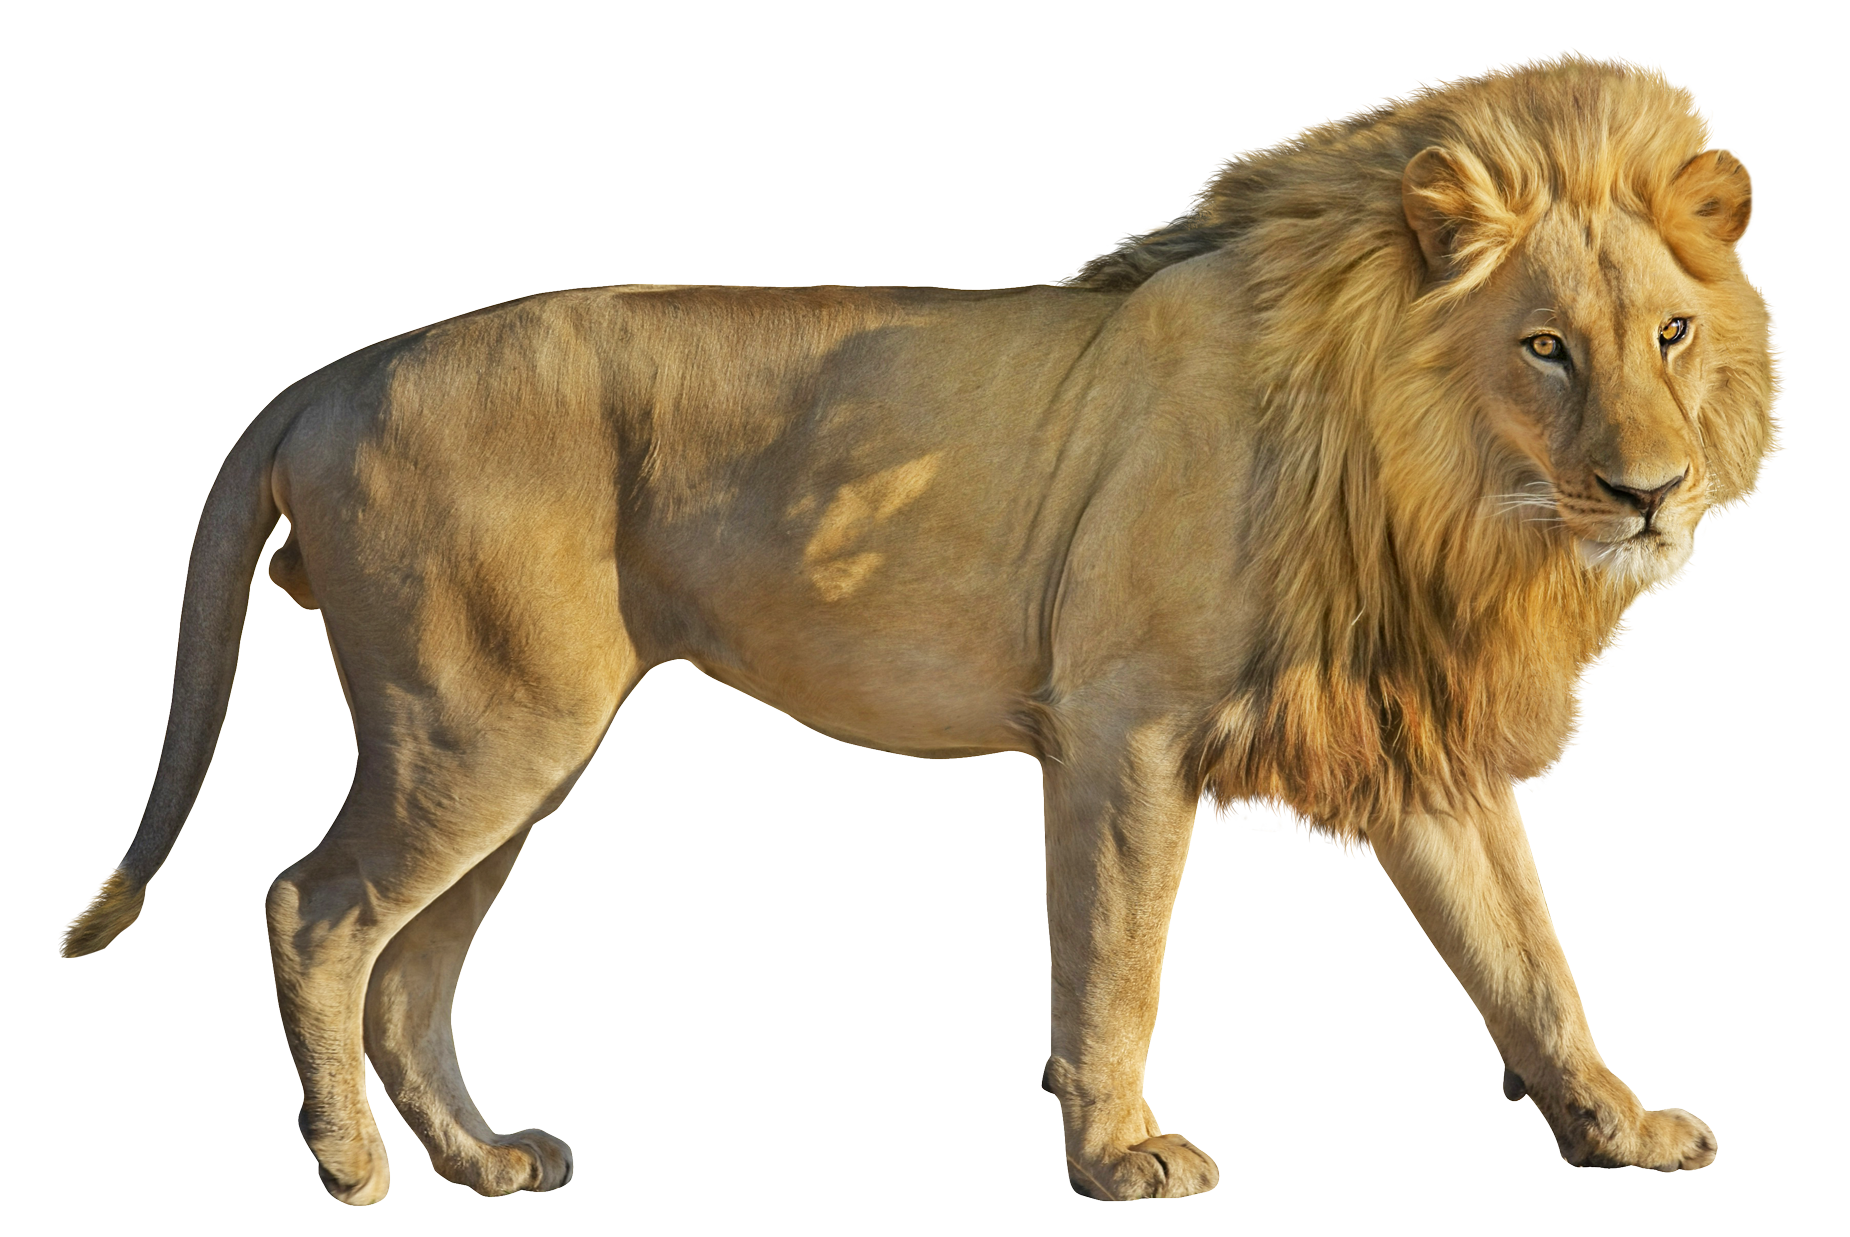 Lion PNG Transparent Image - Lion PNG